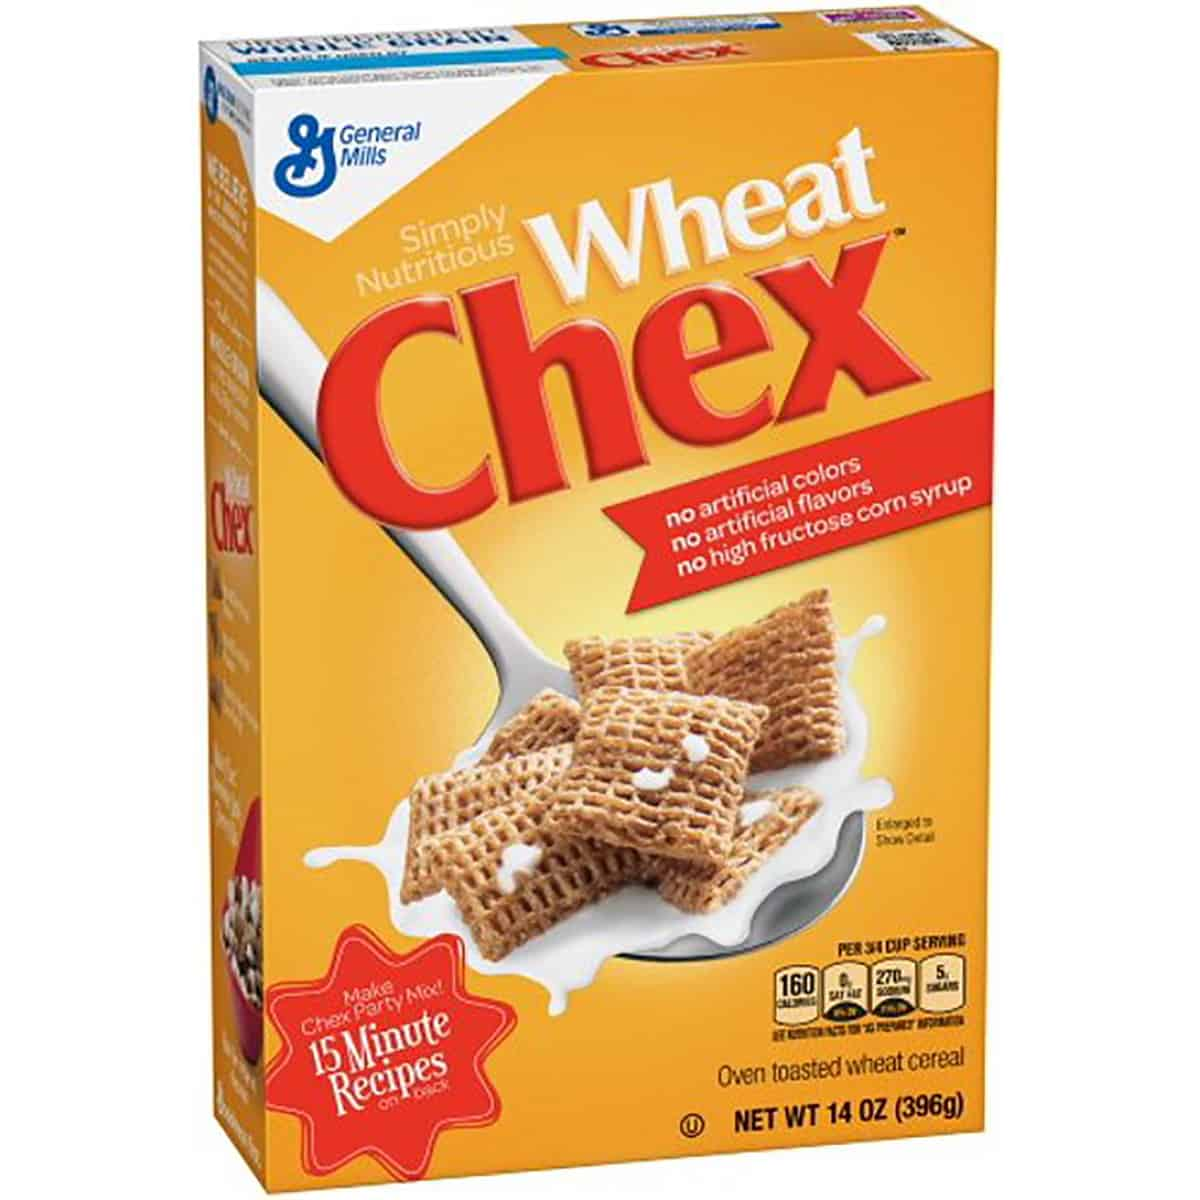 A package of wheat chex cereal.